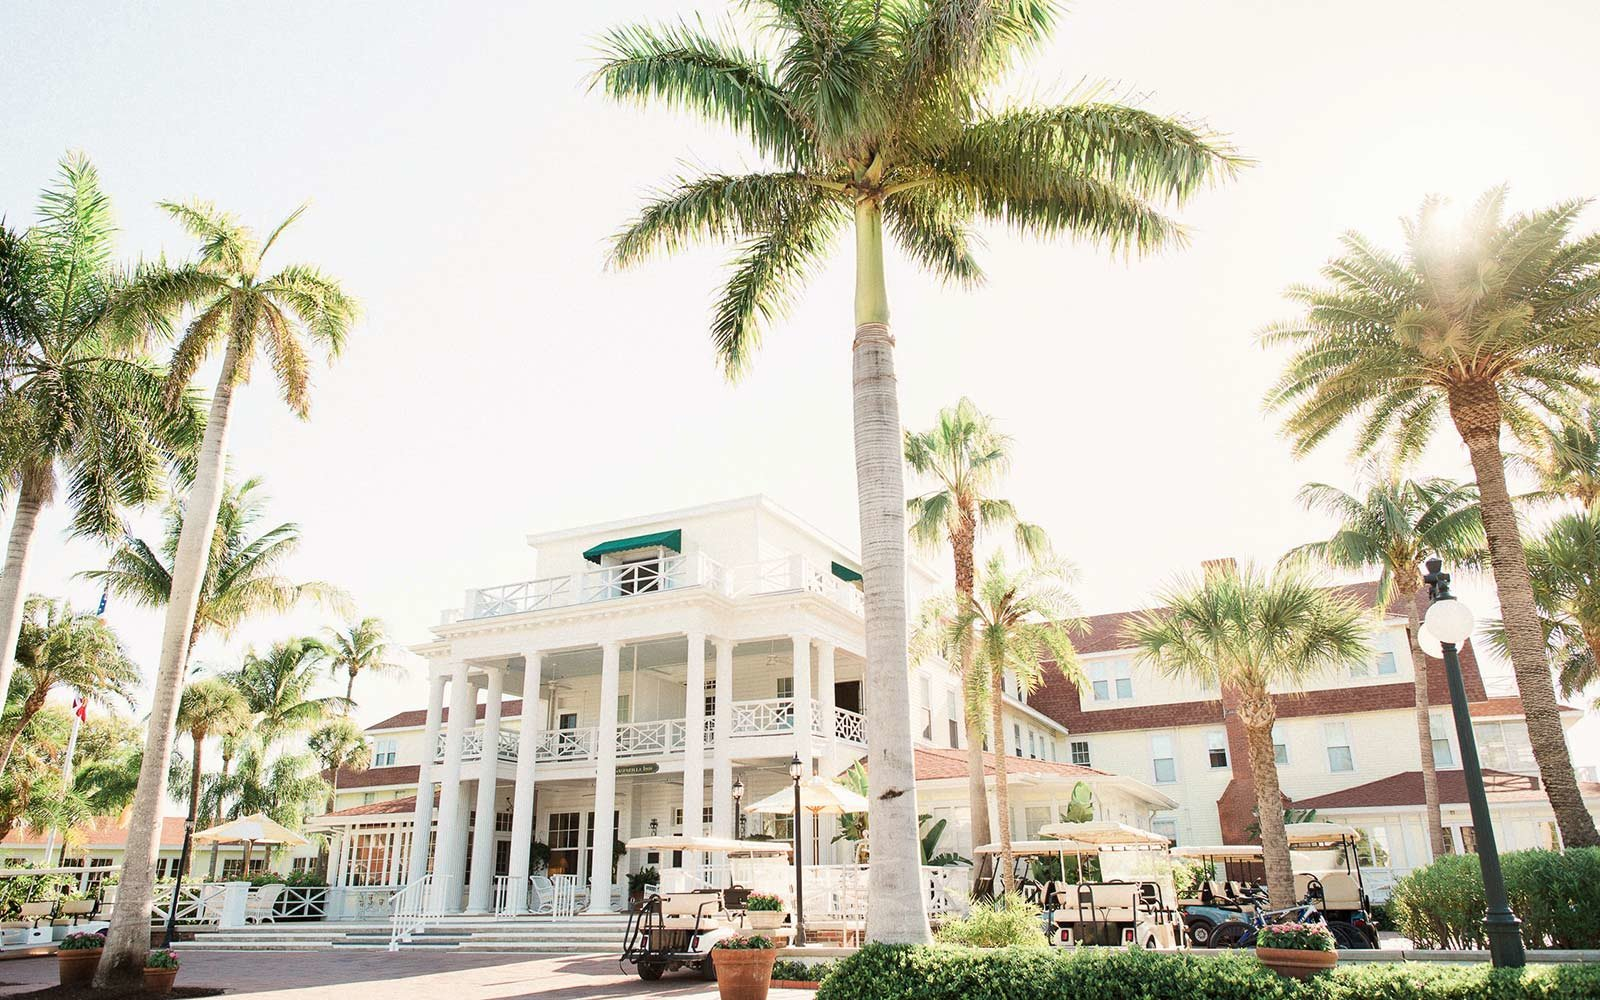 Gasparilla Inn & Club